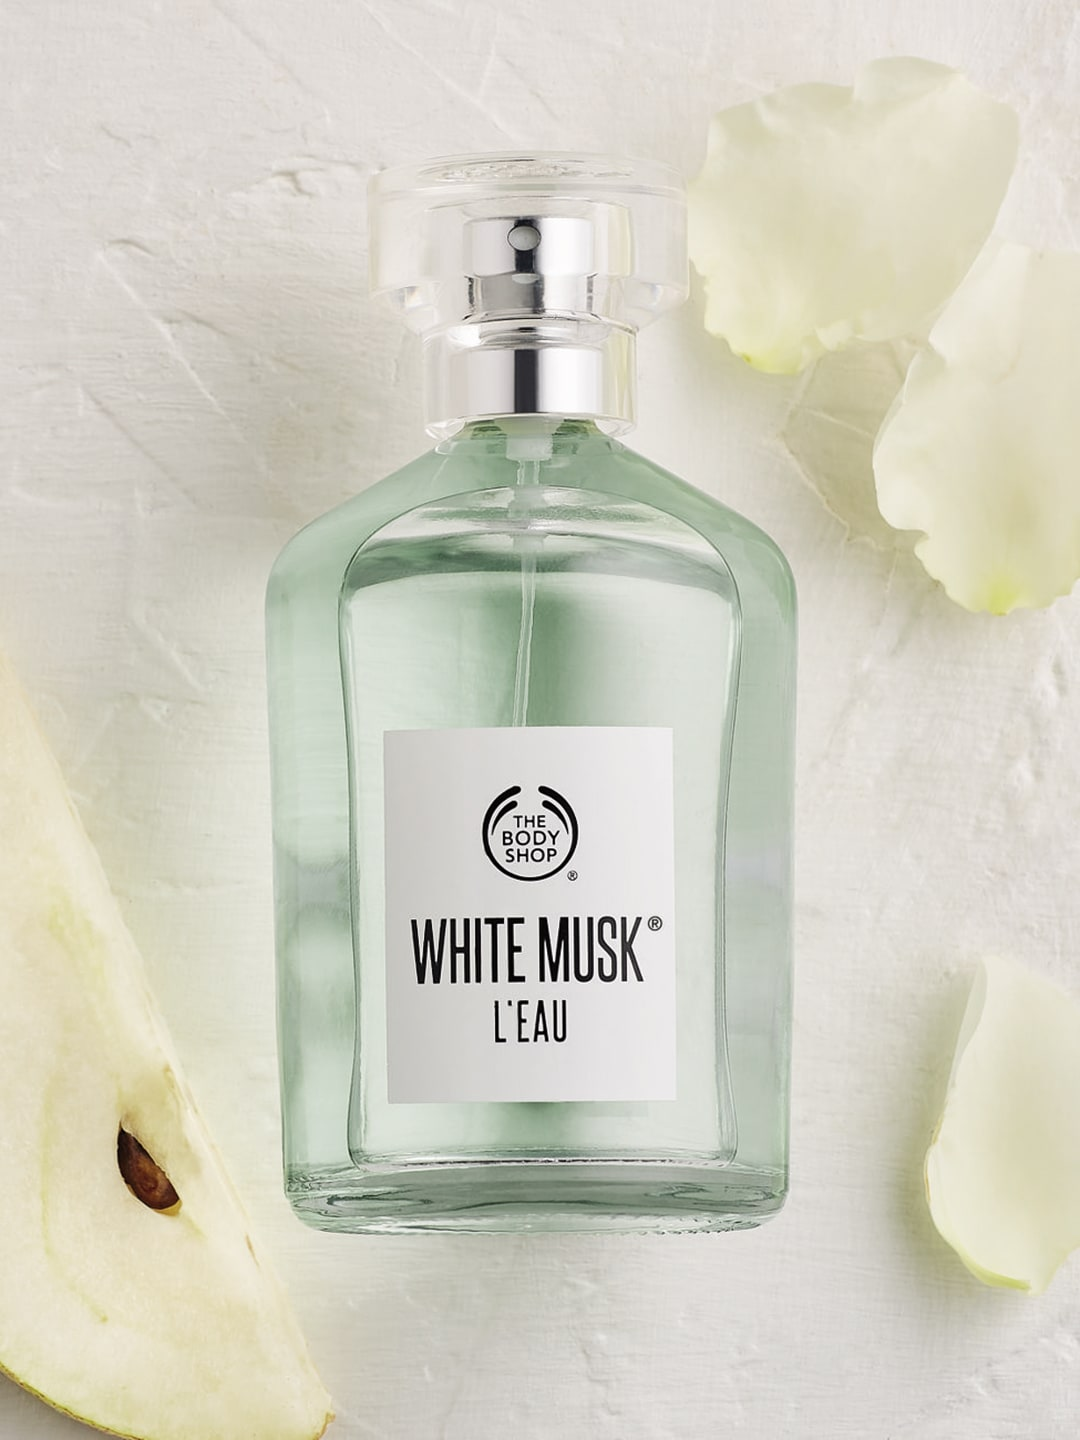 Shop Musk Eau Leau White De Body The Toilette CxtQdsrBh